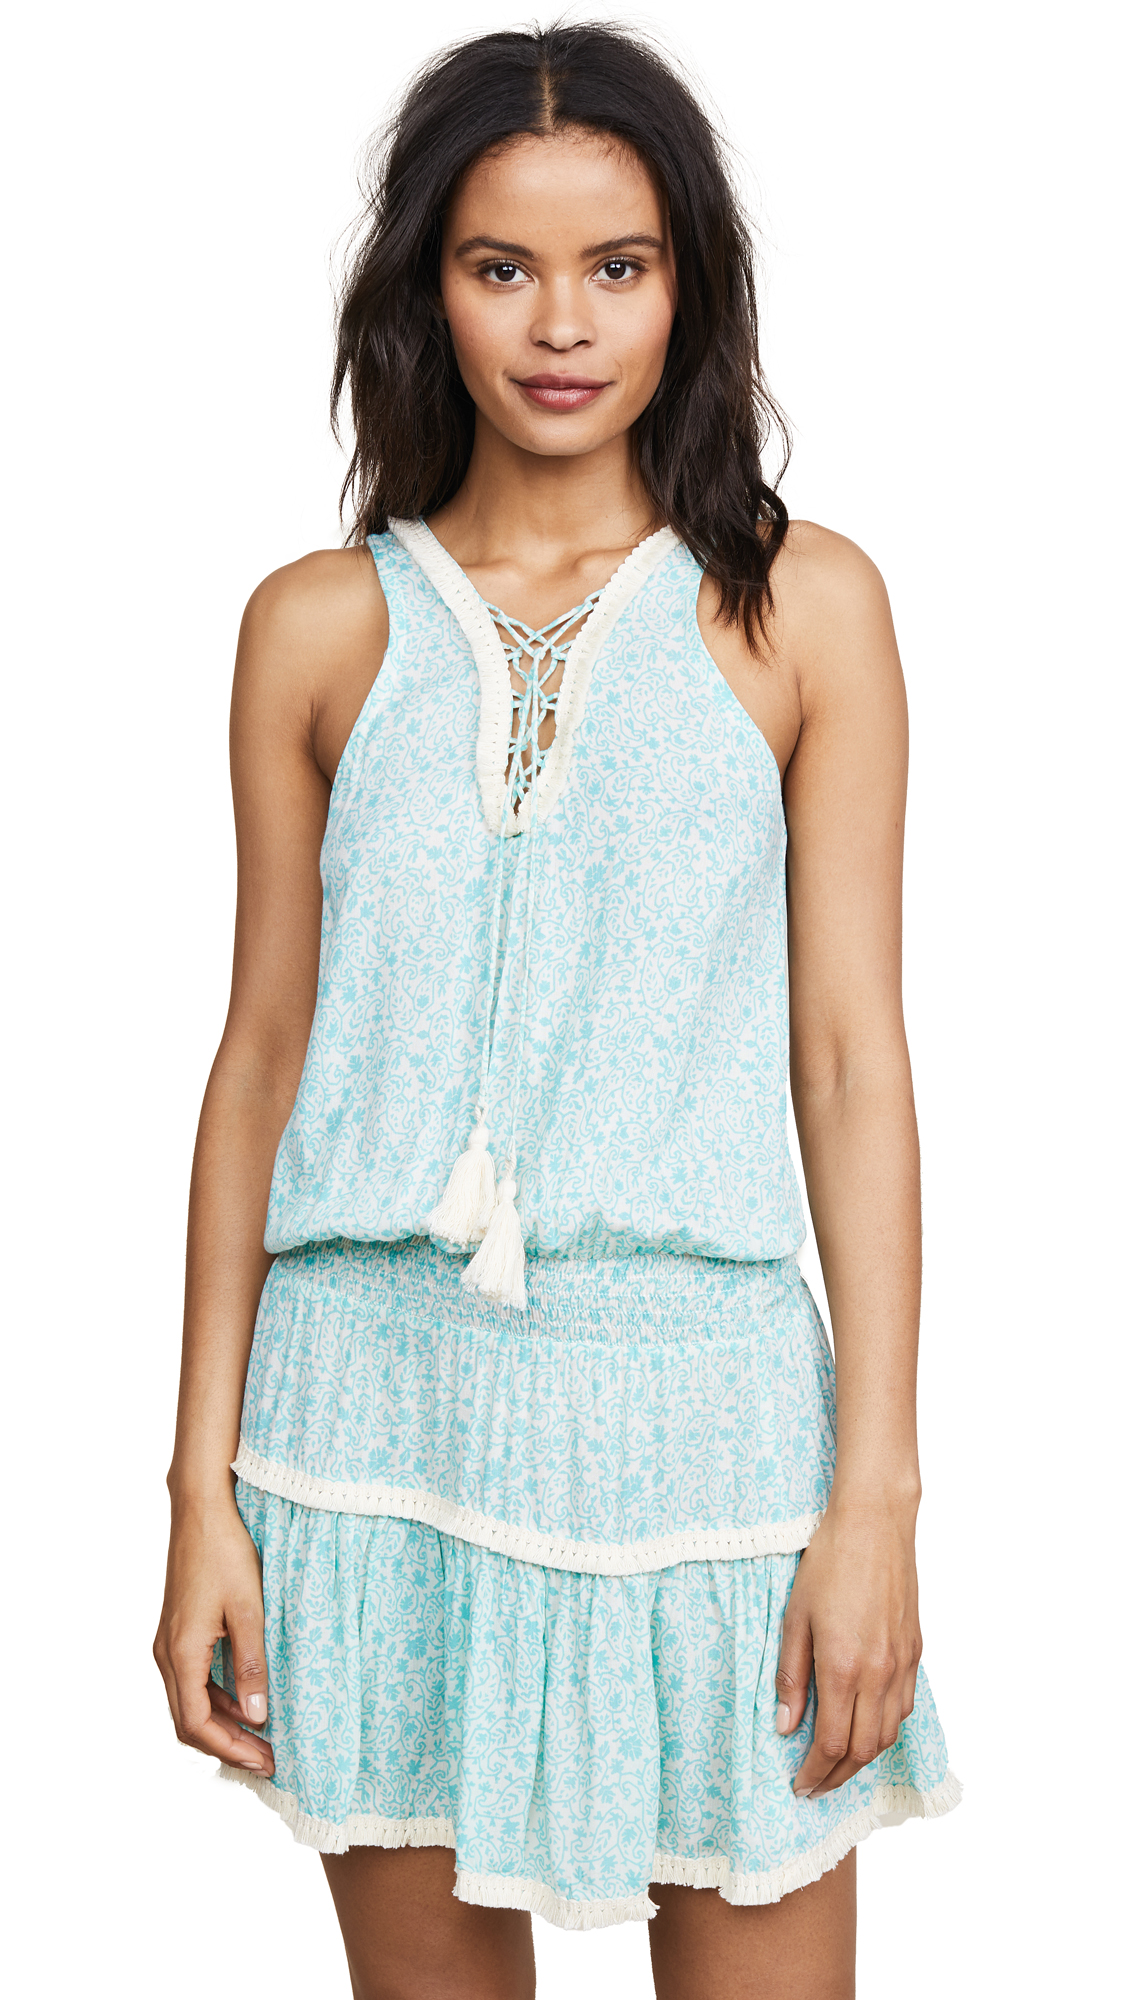 coolchange Lorient Tessa Tunic In Turquoise